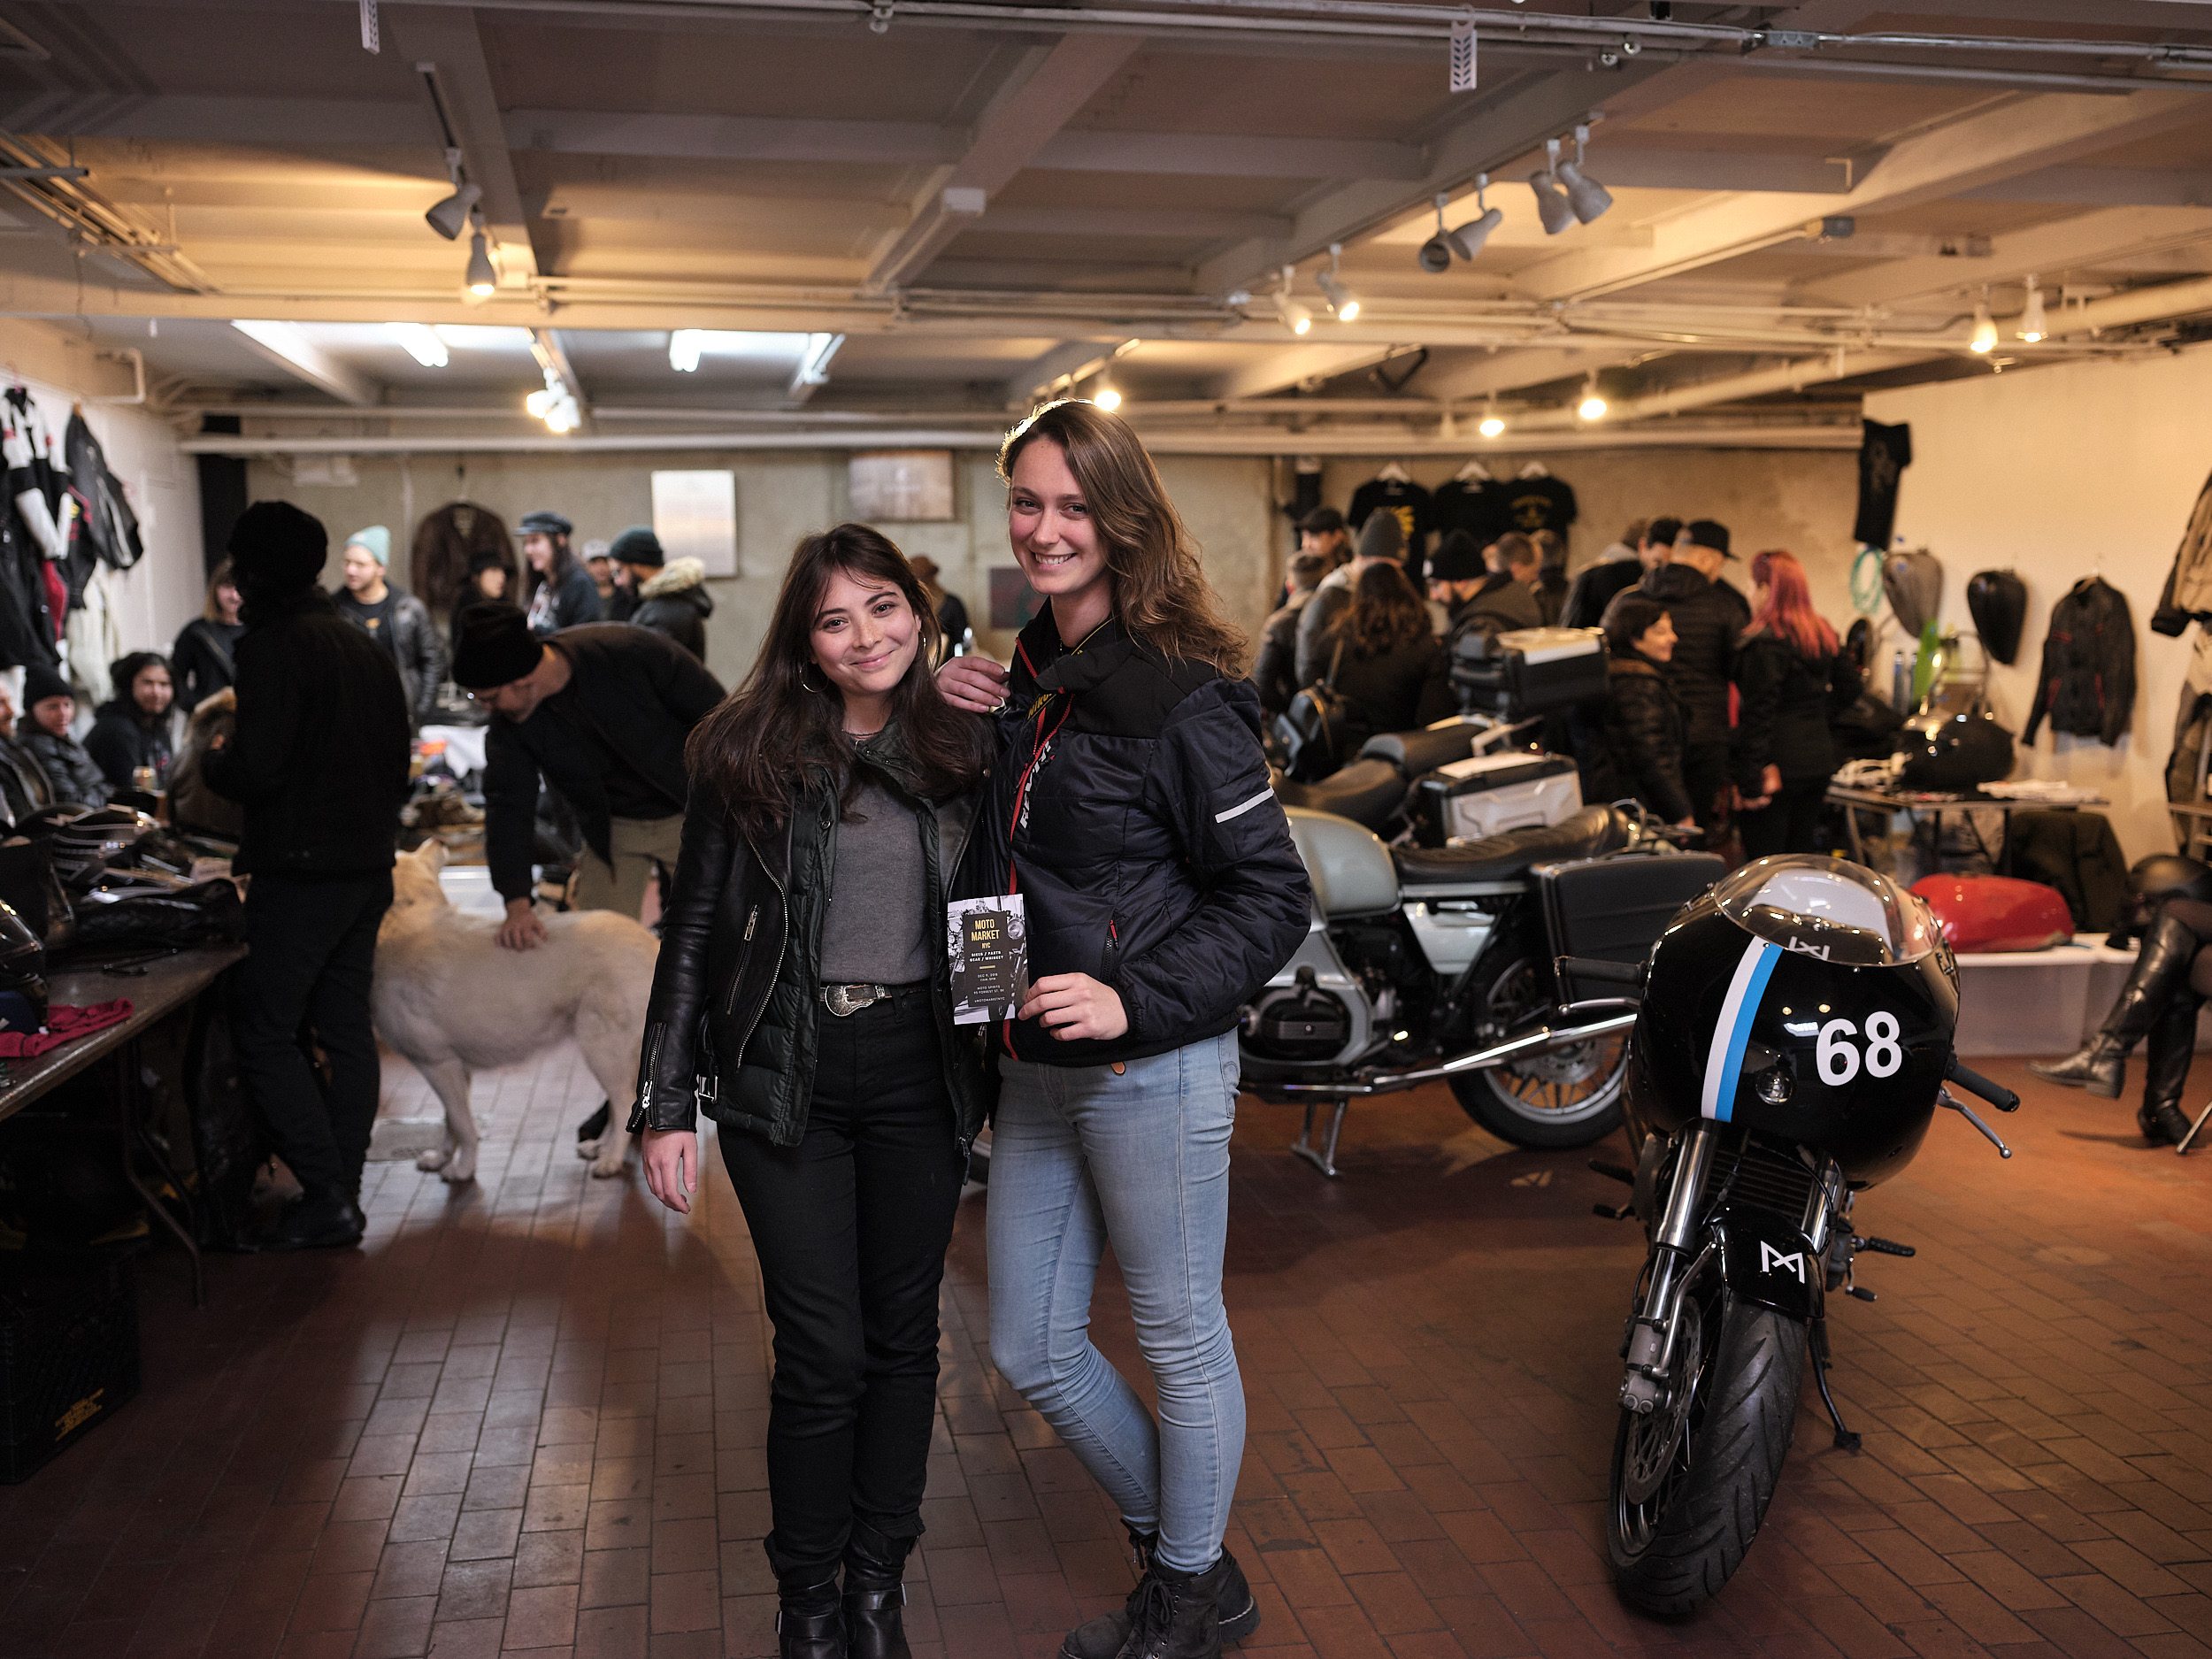 Our Team - We're a small collective of moto-enthusiasts who are doing what we can to bring together and support the local motorcycle community. Co-Founders include Kirsten Midura, Shelley Golan, and Shmulik Avital, plus a number of collaborators and contributors to each market.LEARN MORE